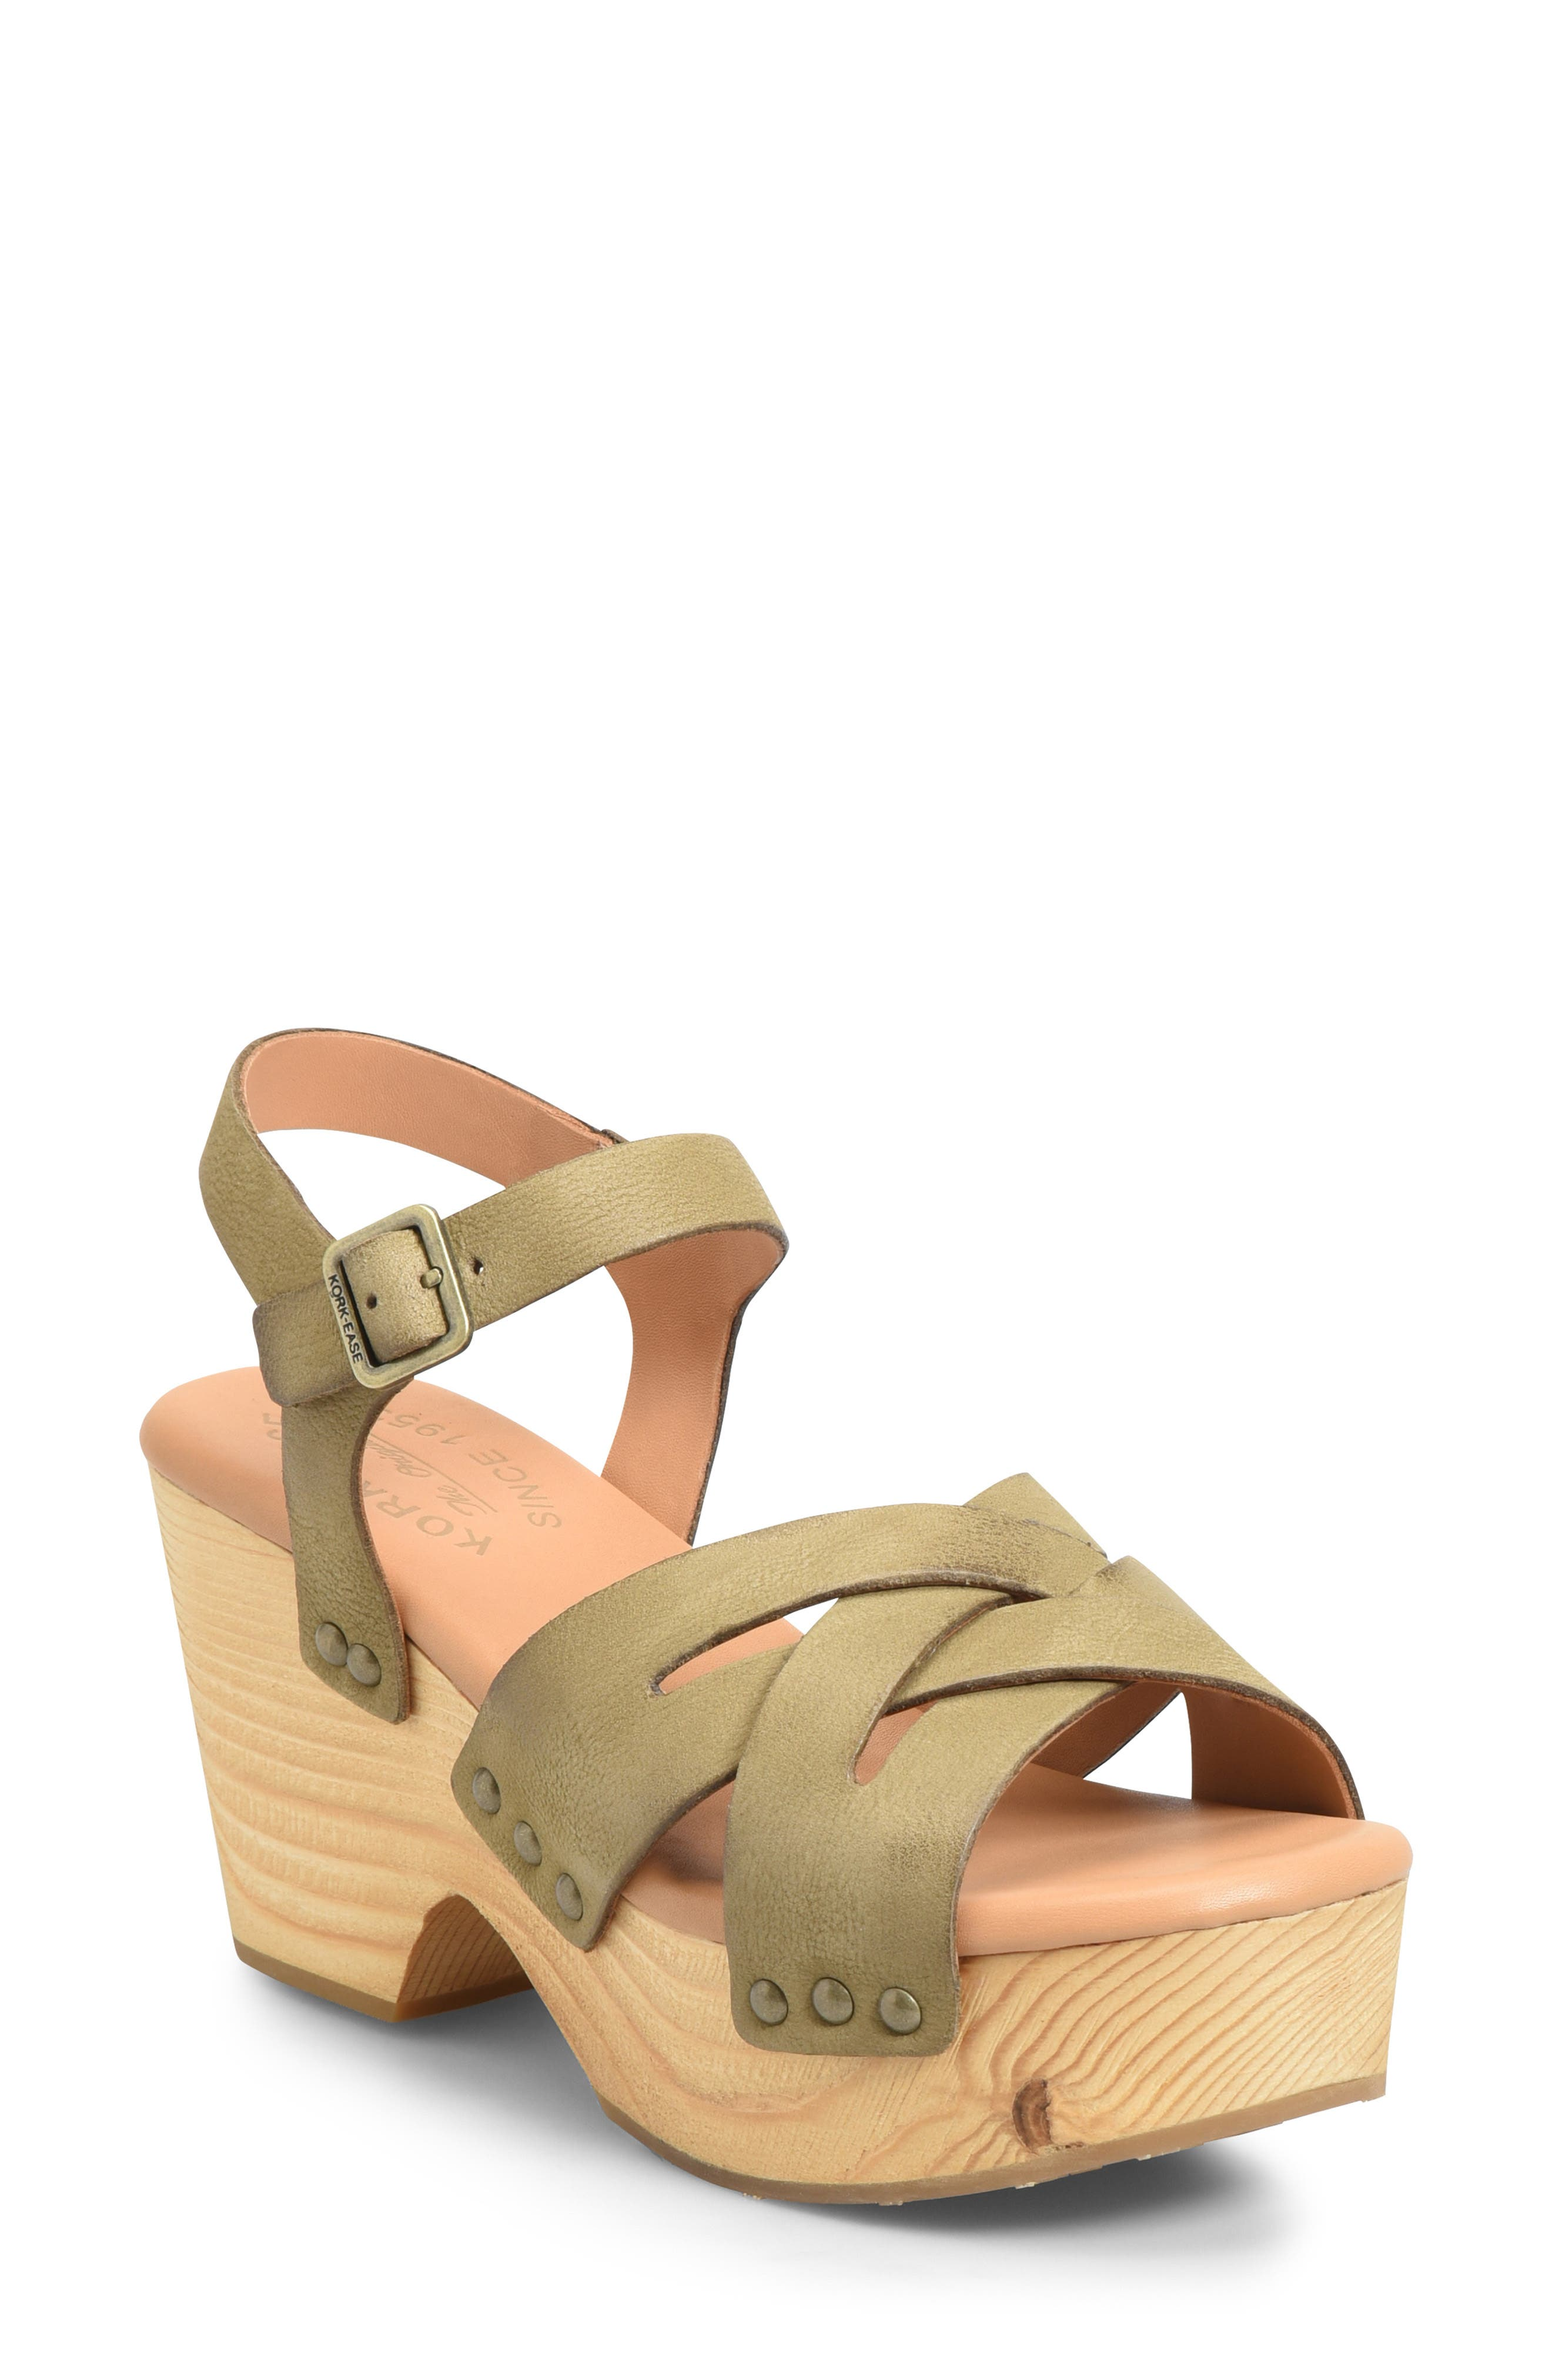 A retro sandal with crisscrossing straps, antique studs and a wood-wrapped platform goes great with all your breezy hemlines this season. Style Name: Kork-Ease Wausau Platform Sandal (Women). Style Number: 5789533 2. Available in stores.